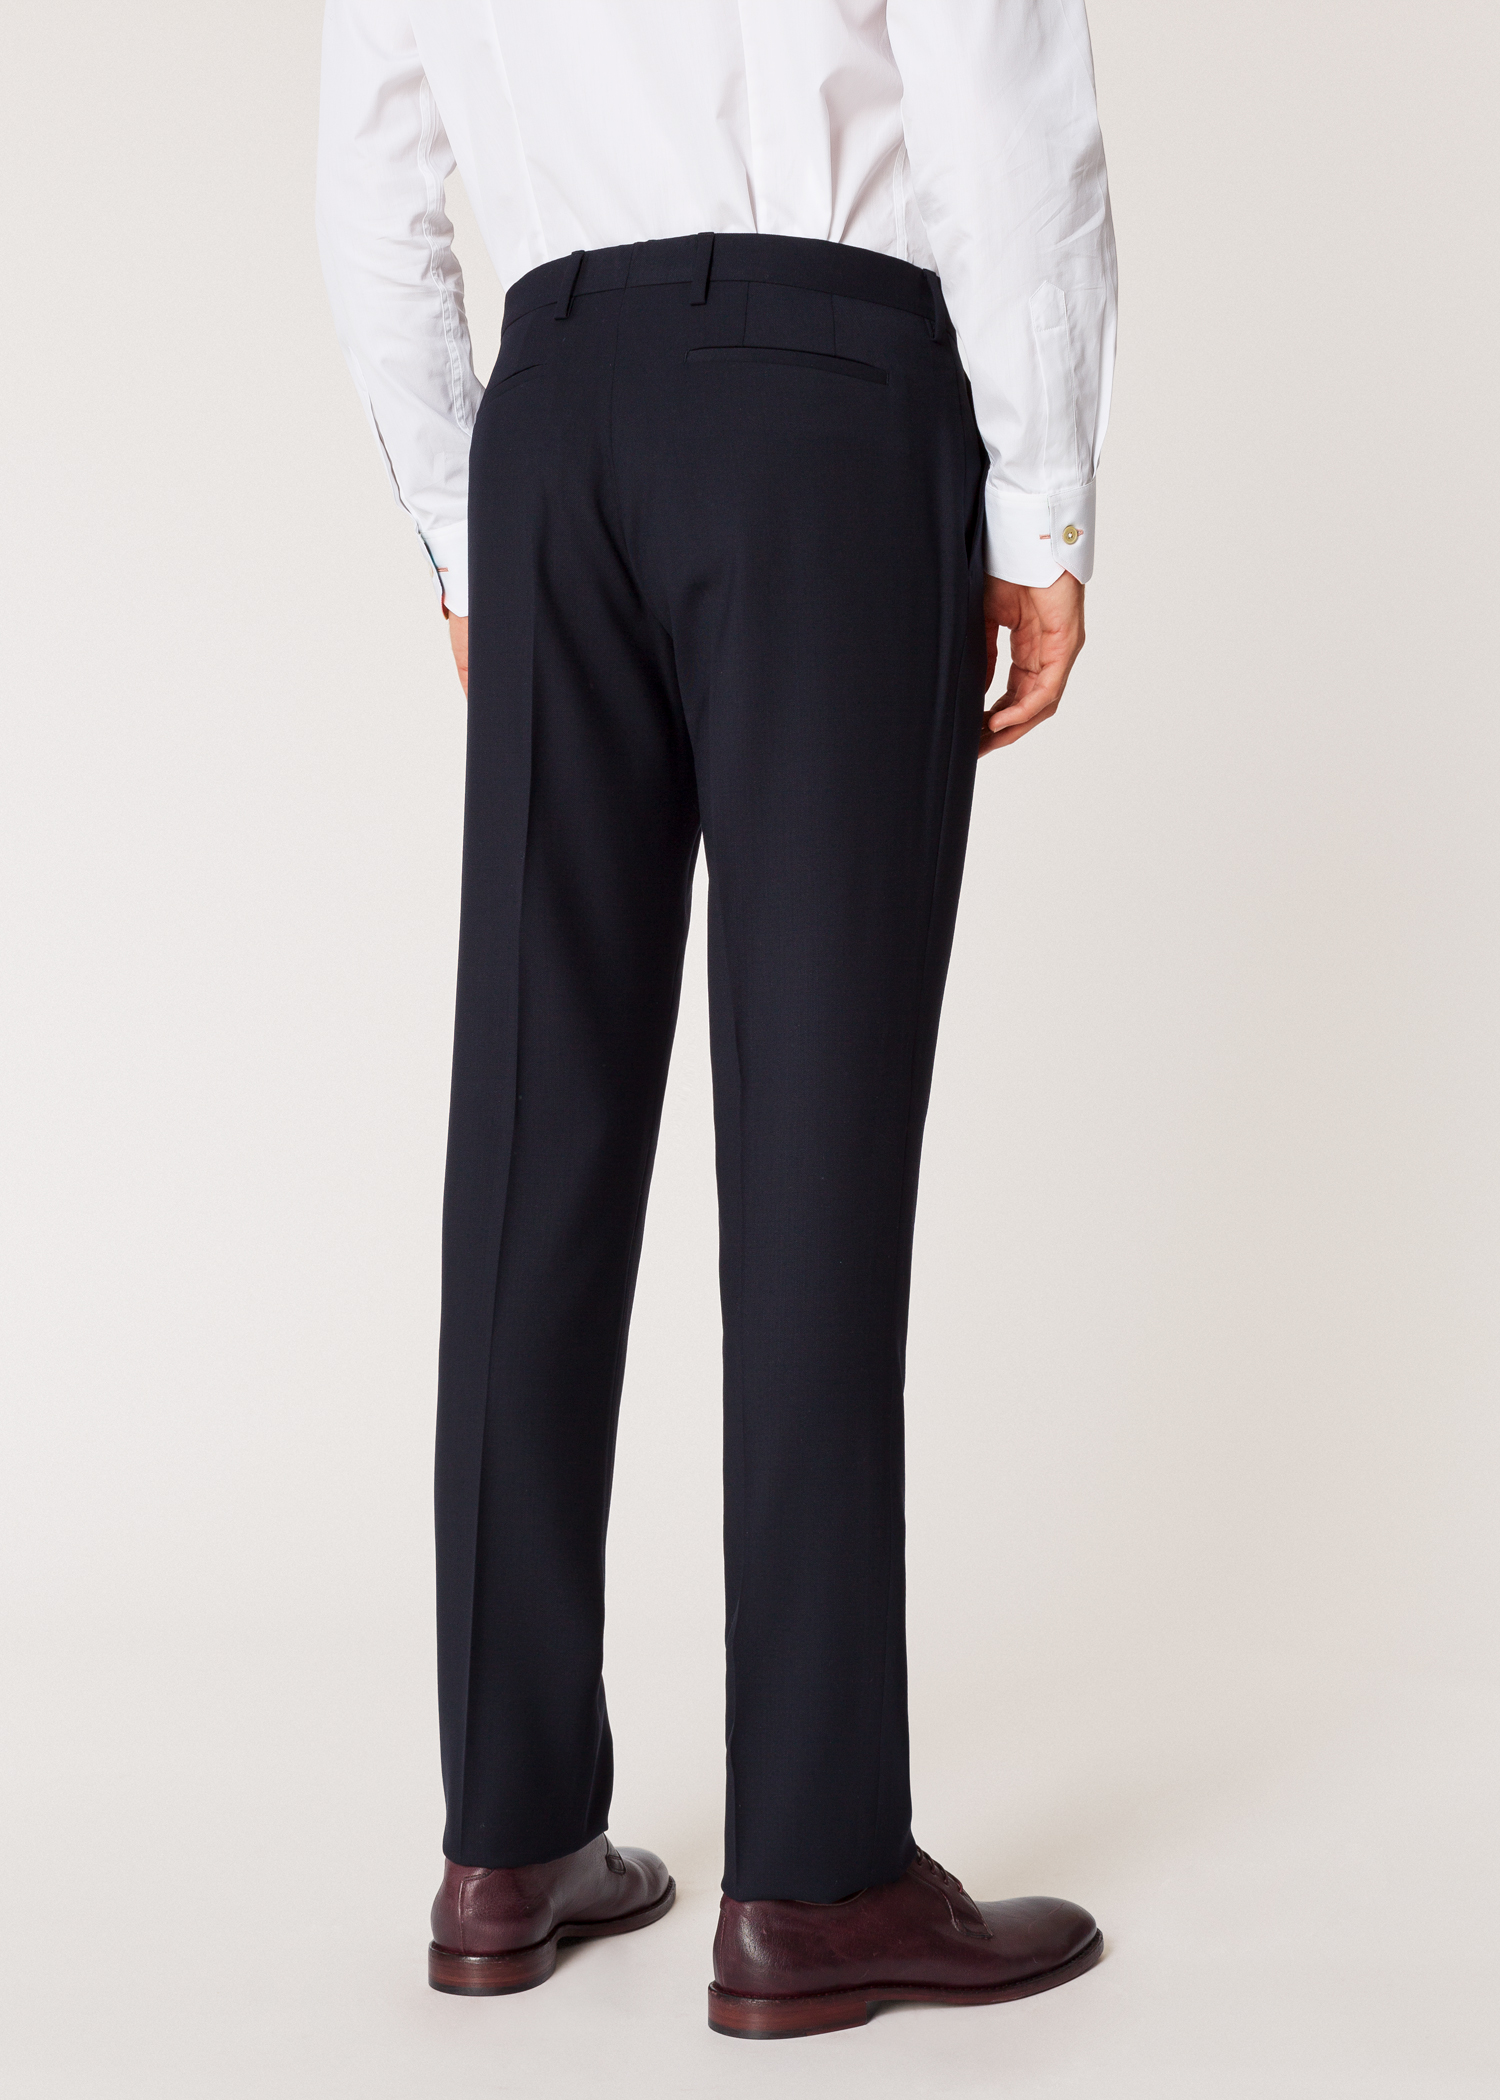 004142a5cdd6 Men's Slim-Fit Navy Wool 'A Suit To Travel In' Trousers - Paul Smith